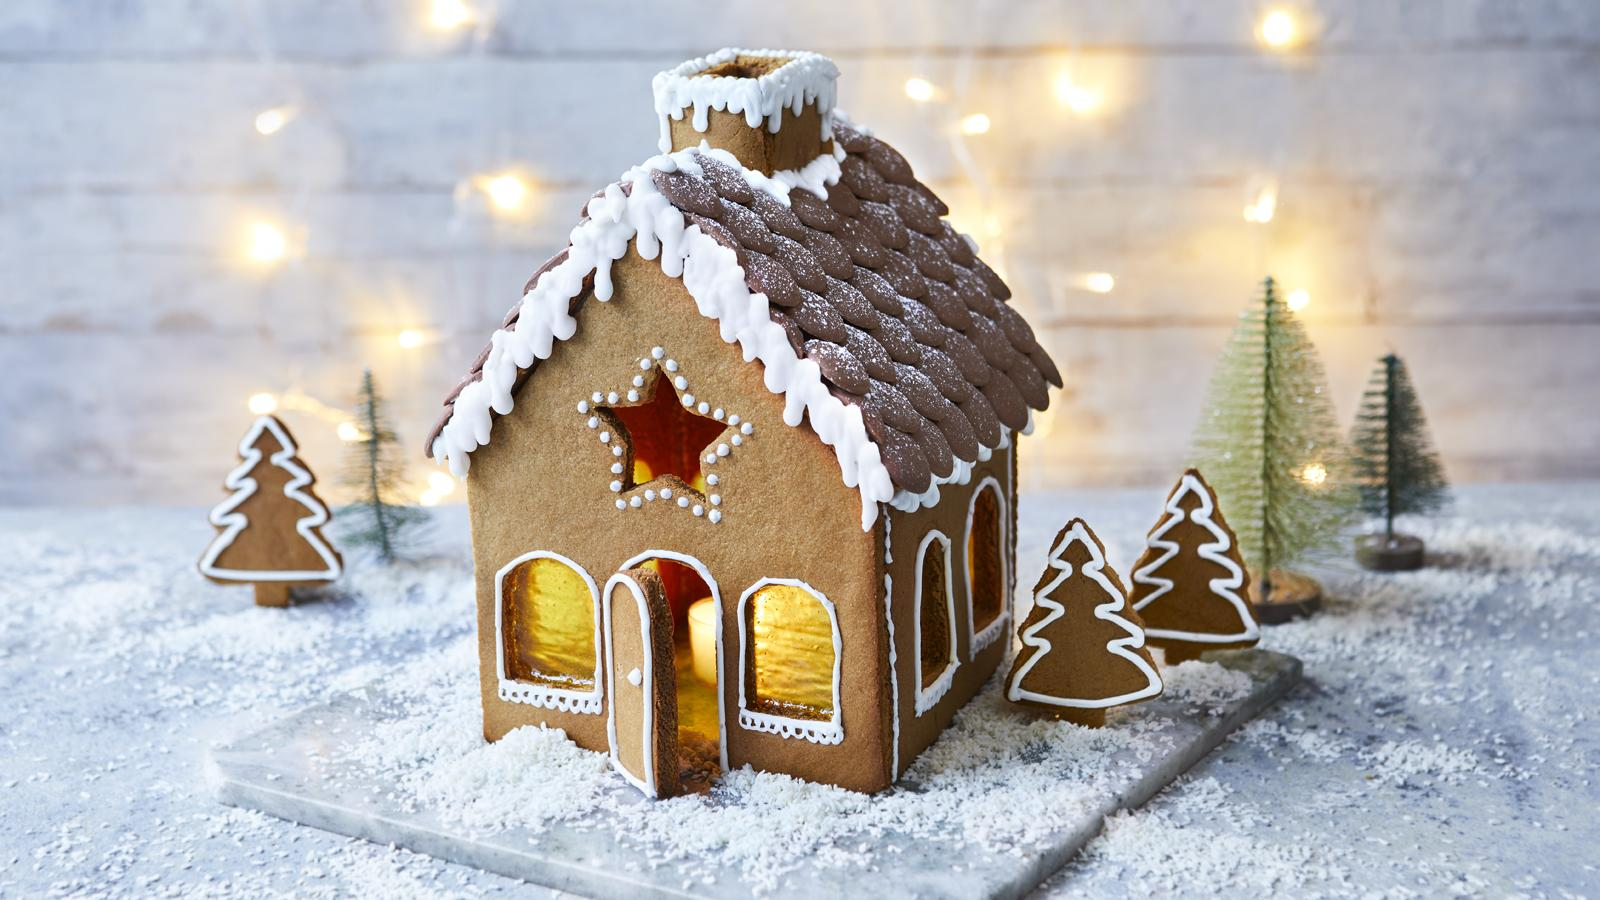 OUR FAVOURITE GINGERBREAD HOUSE RECIPE